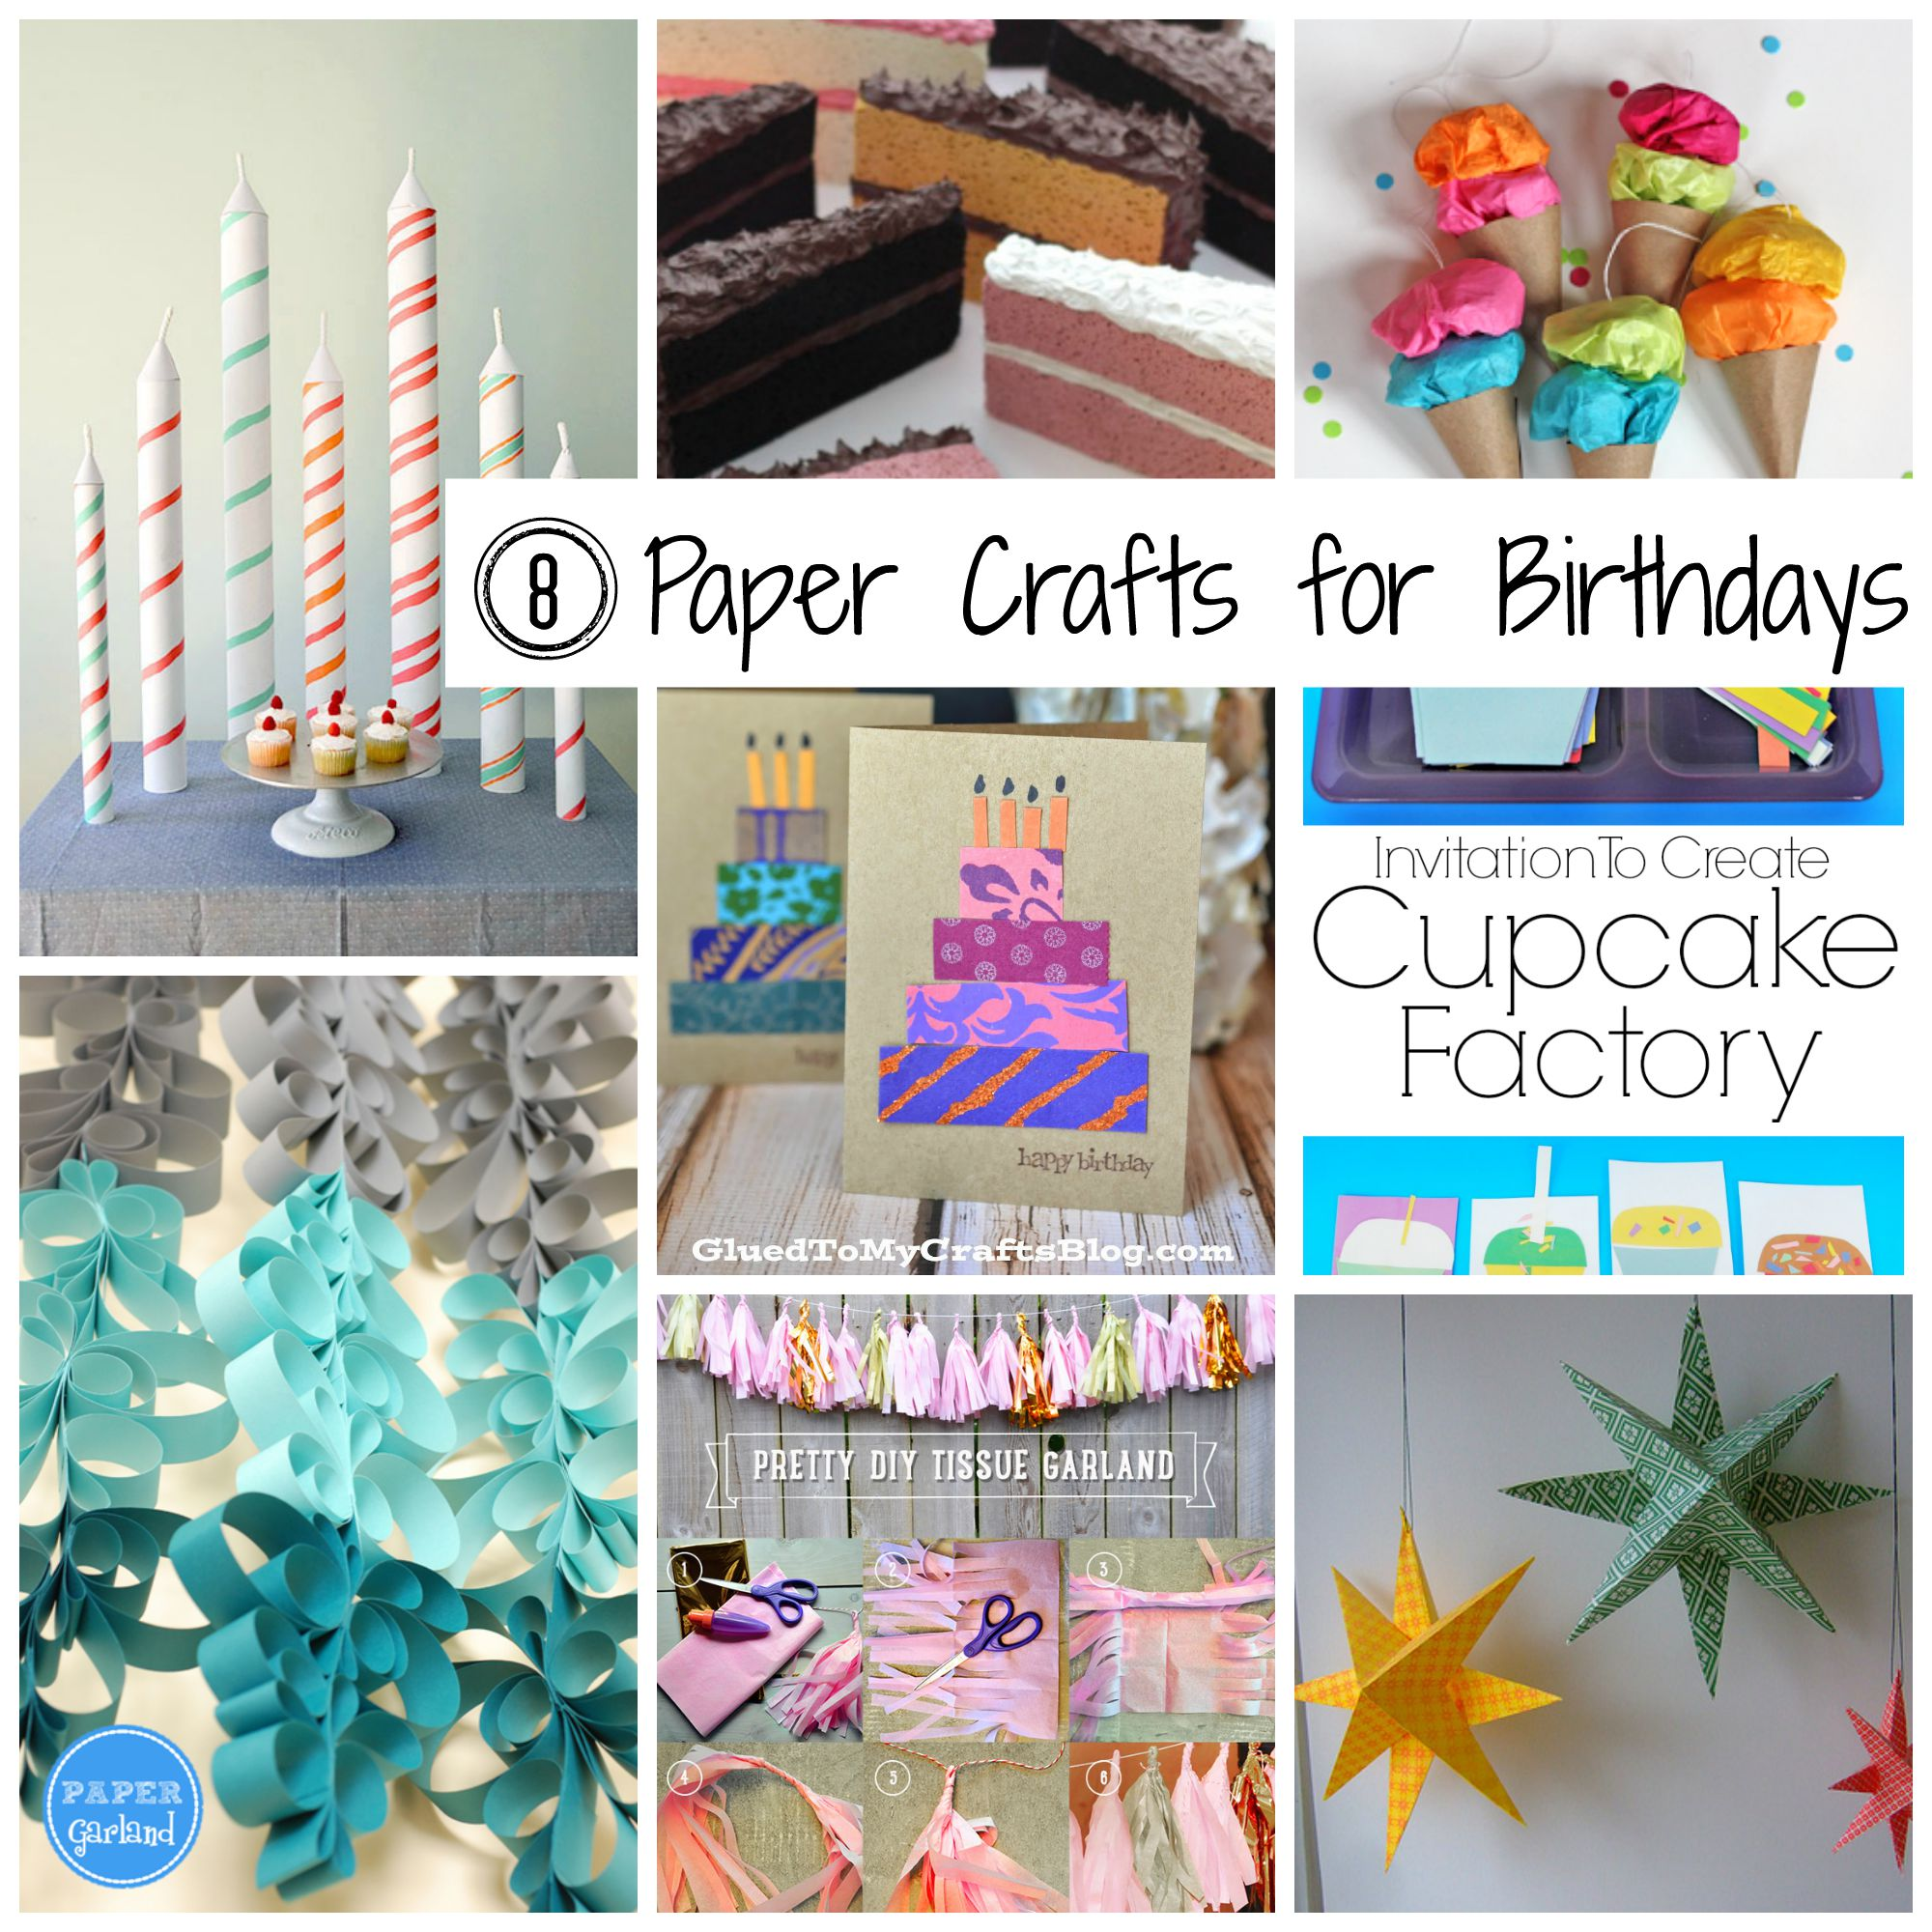 8 paper crafts for birthdays the papery craftery for Crafts for birthday parties